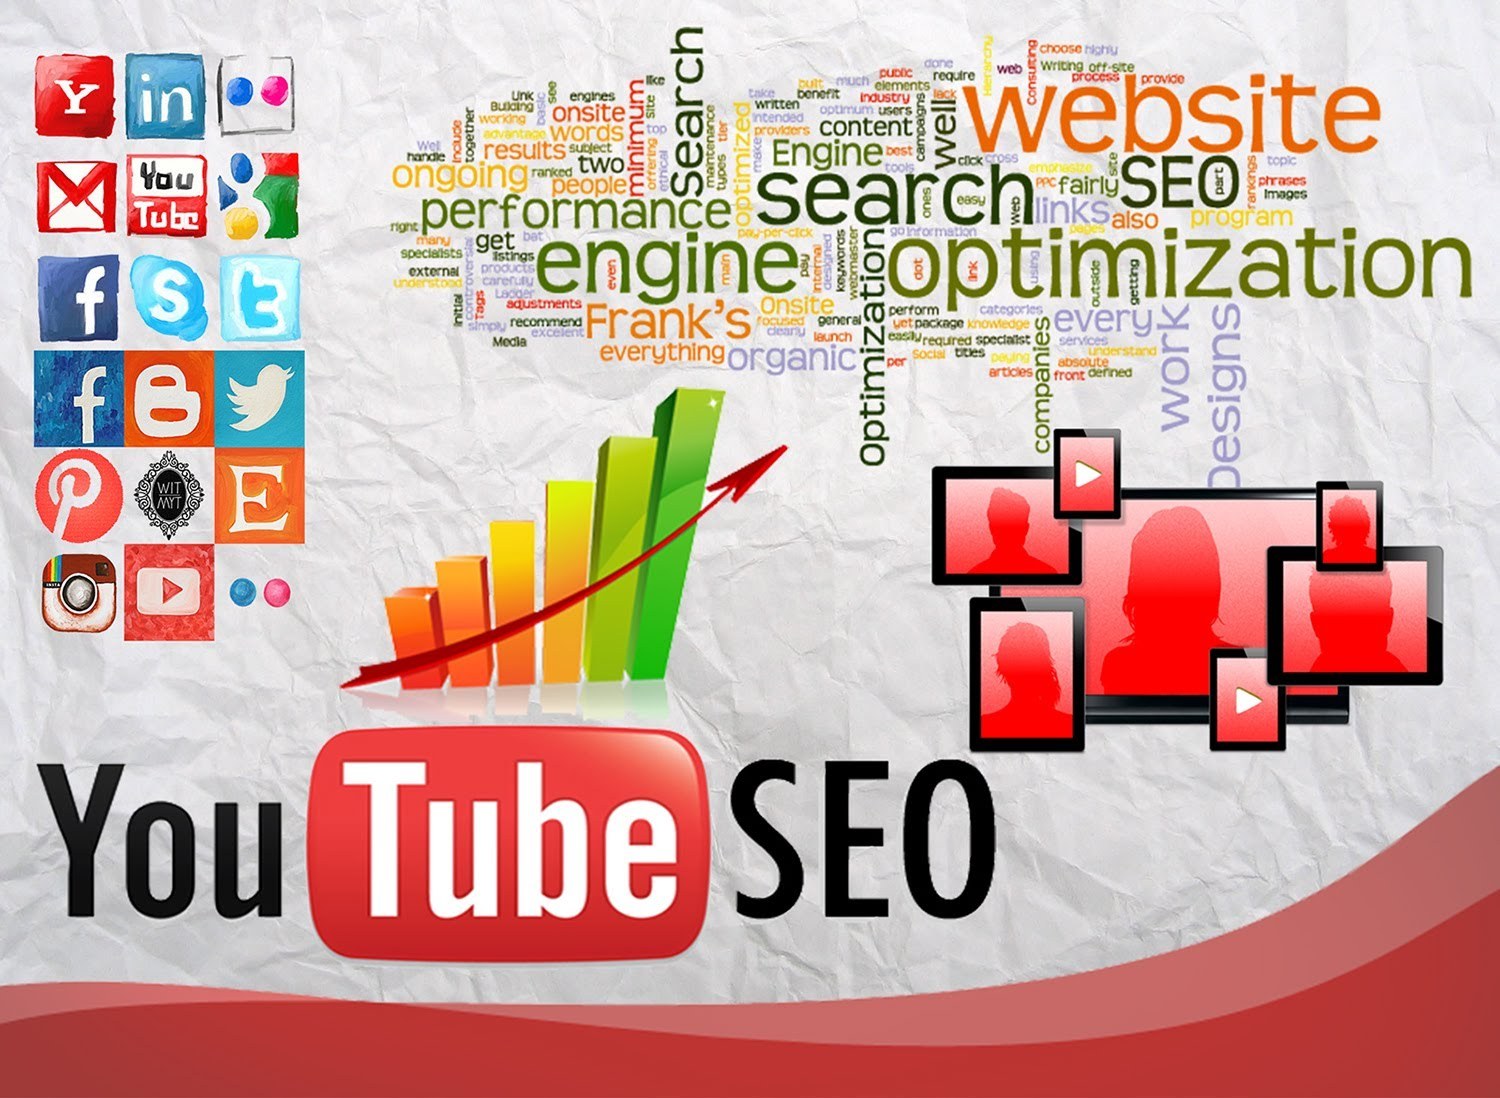 Youtube Seo: How To Improve Your Ranking